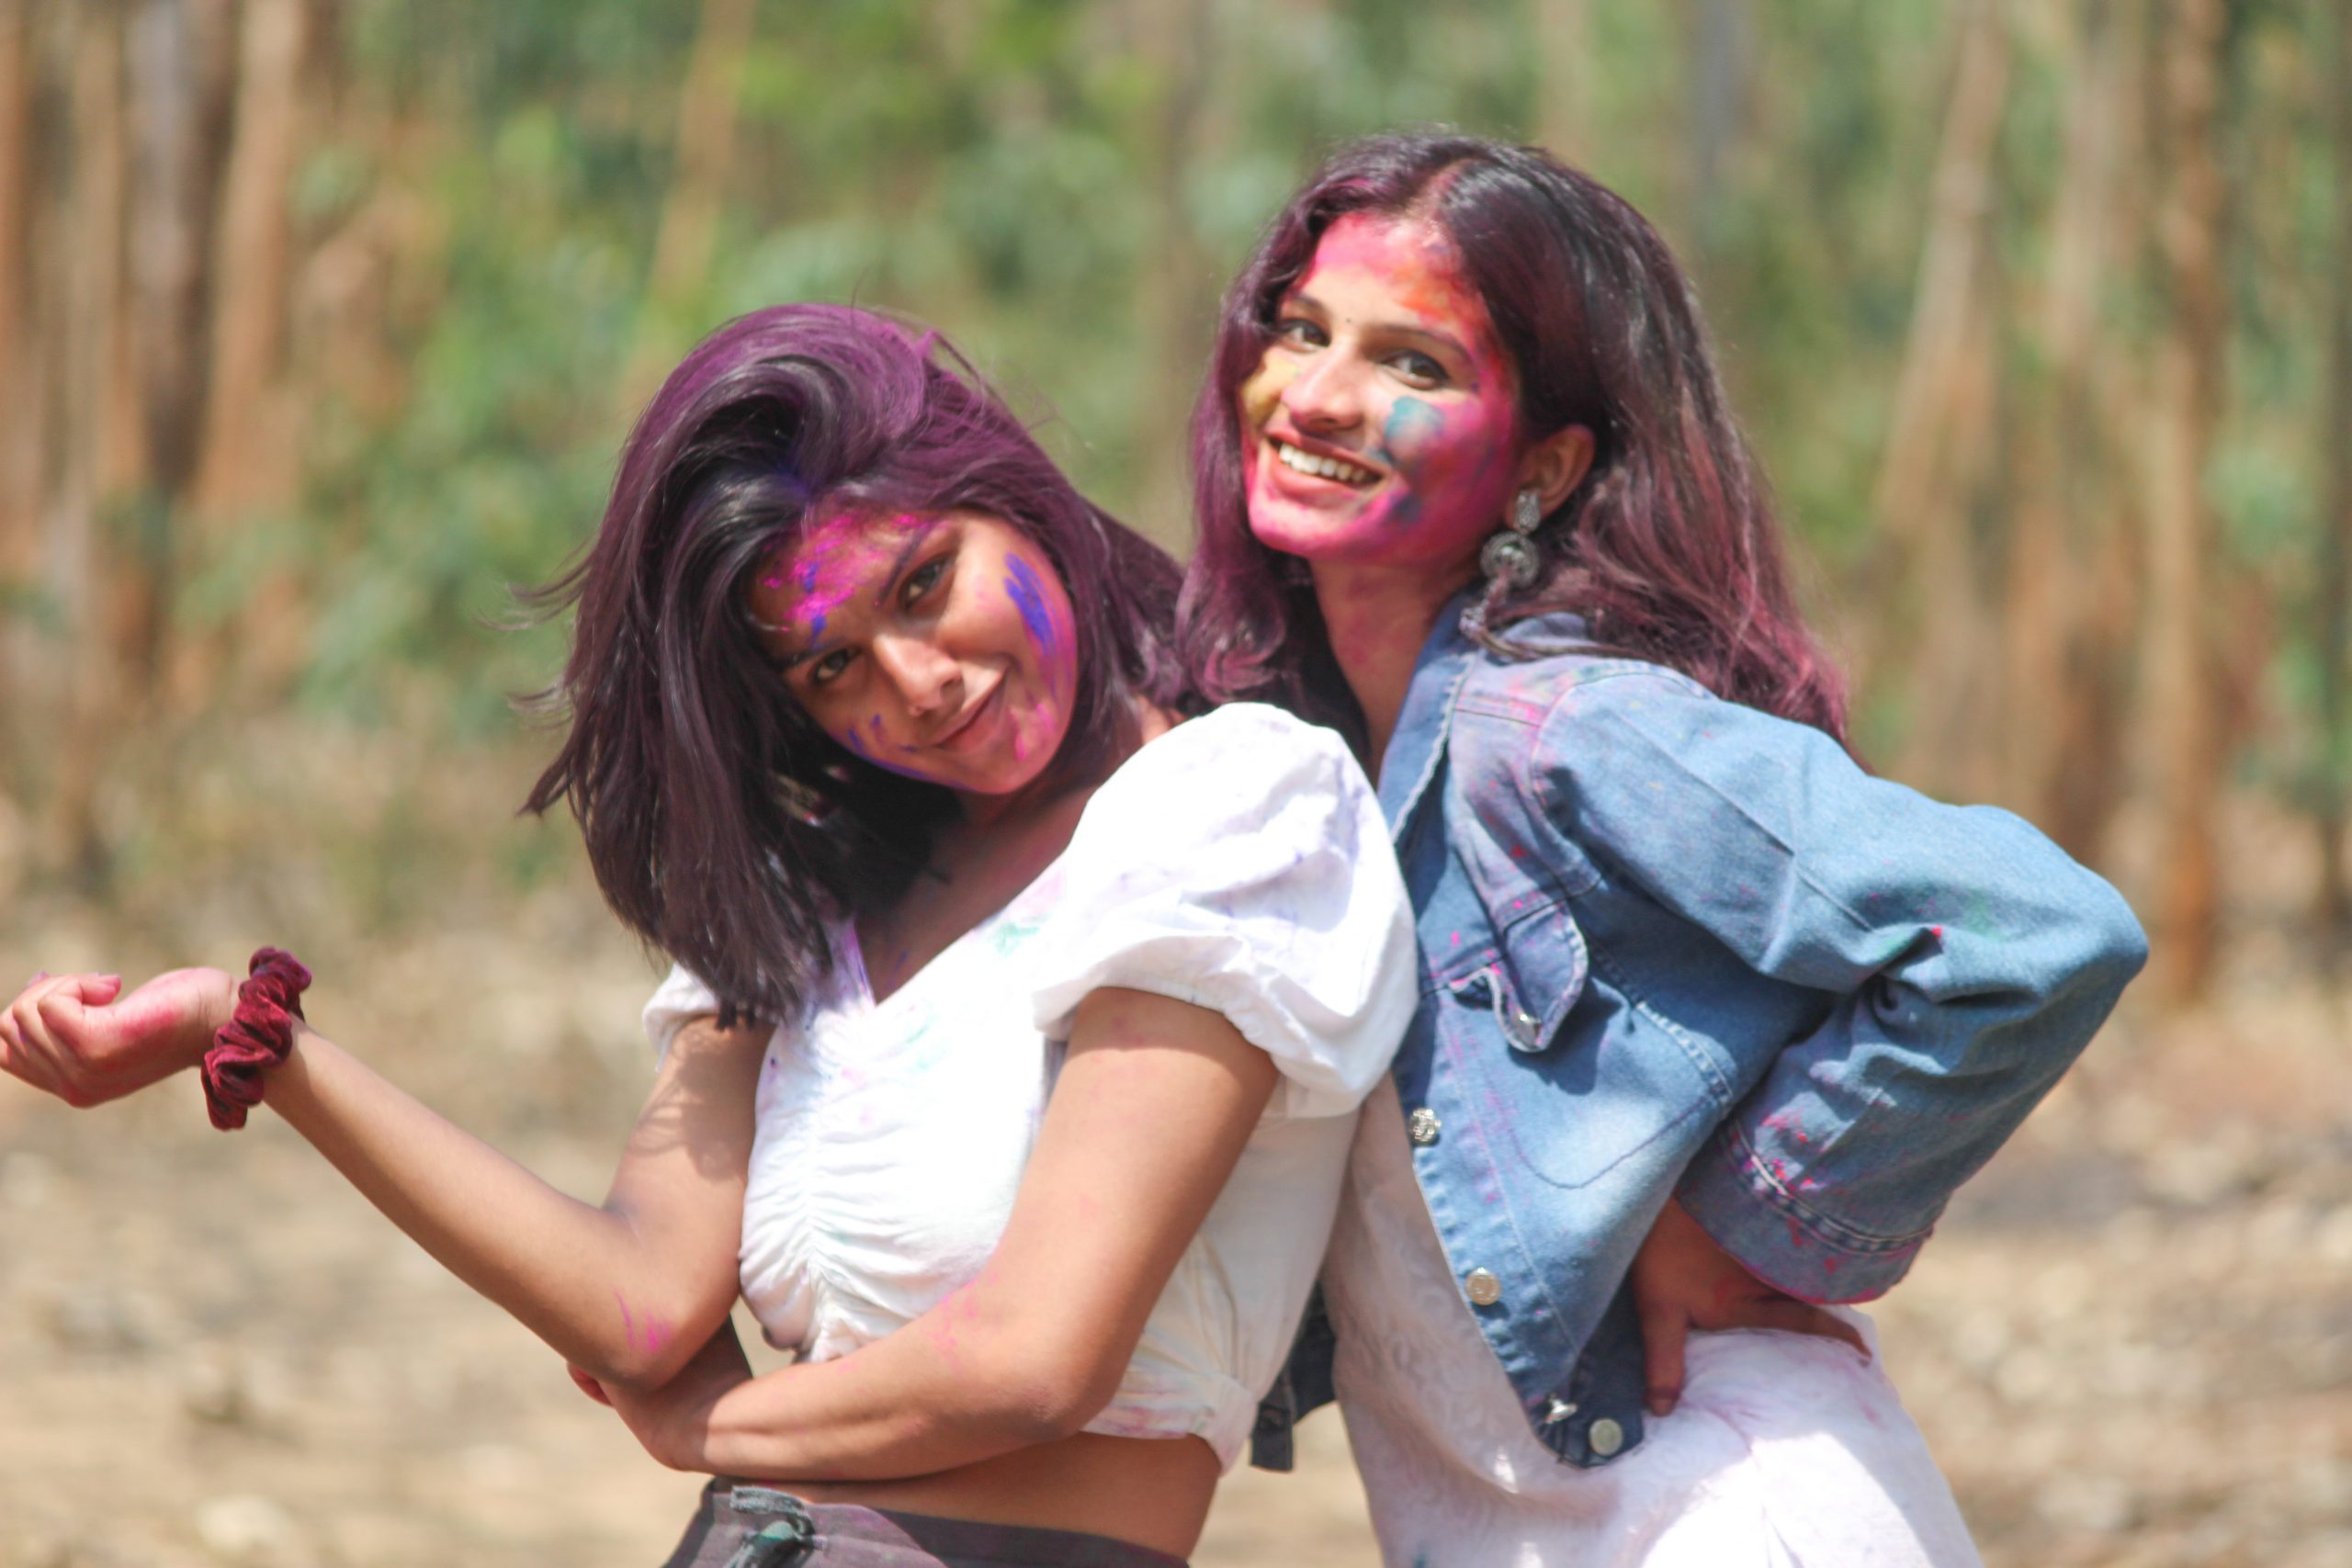 Stylish girls posing with Holi colors